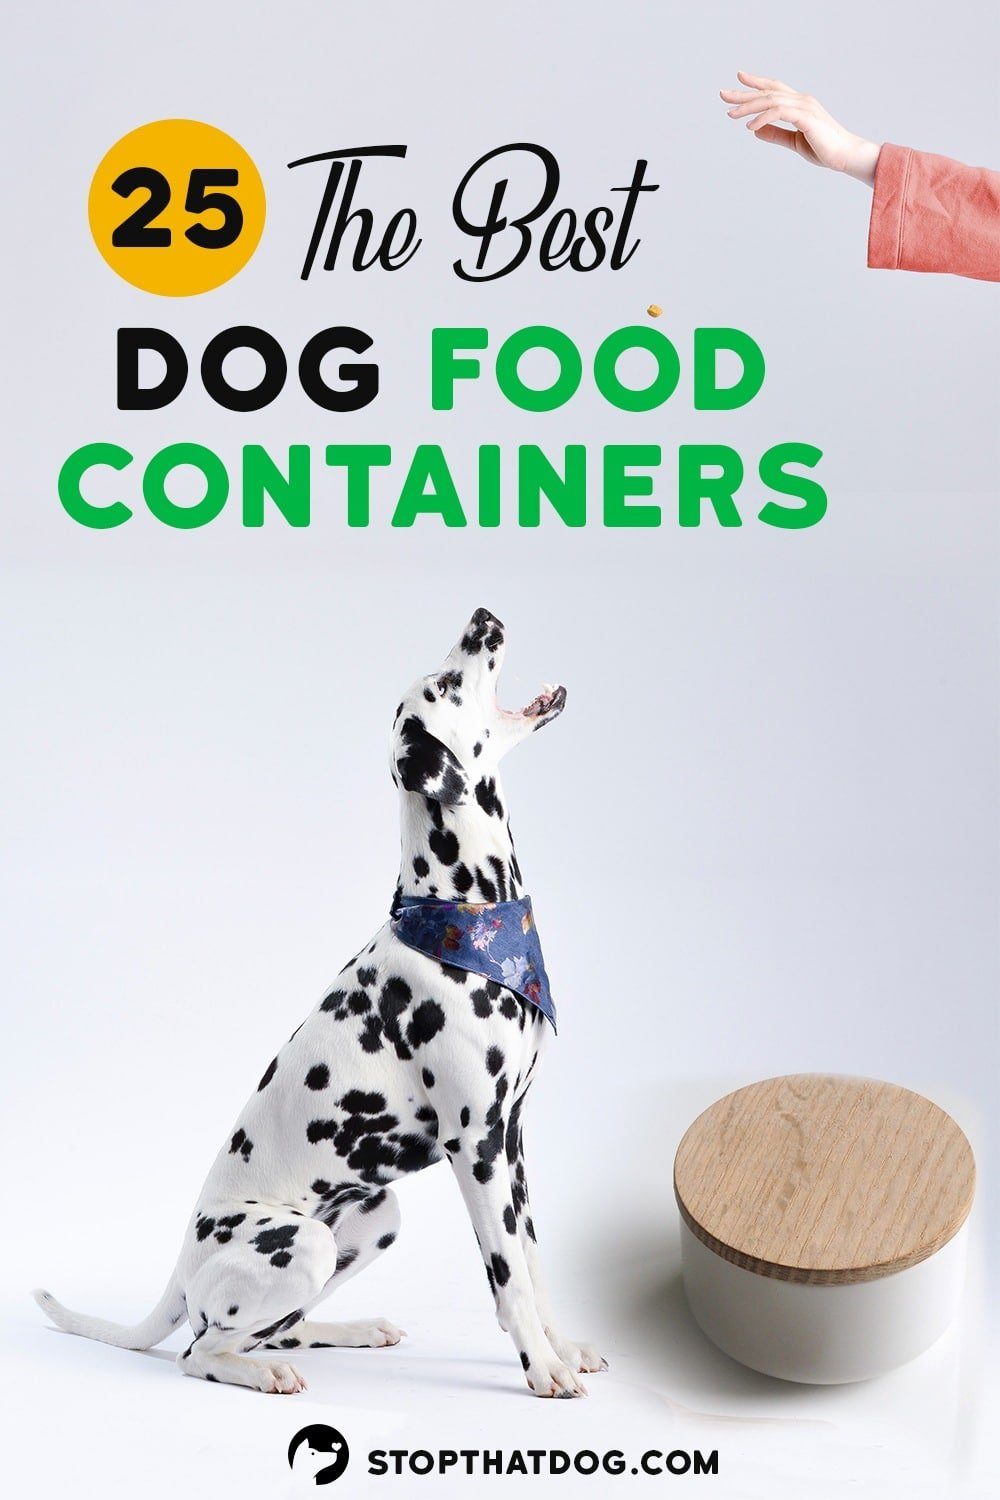 The Best Dog Food Containers For 2020 - A Comprehensive Guide